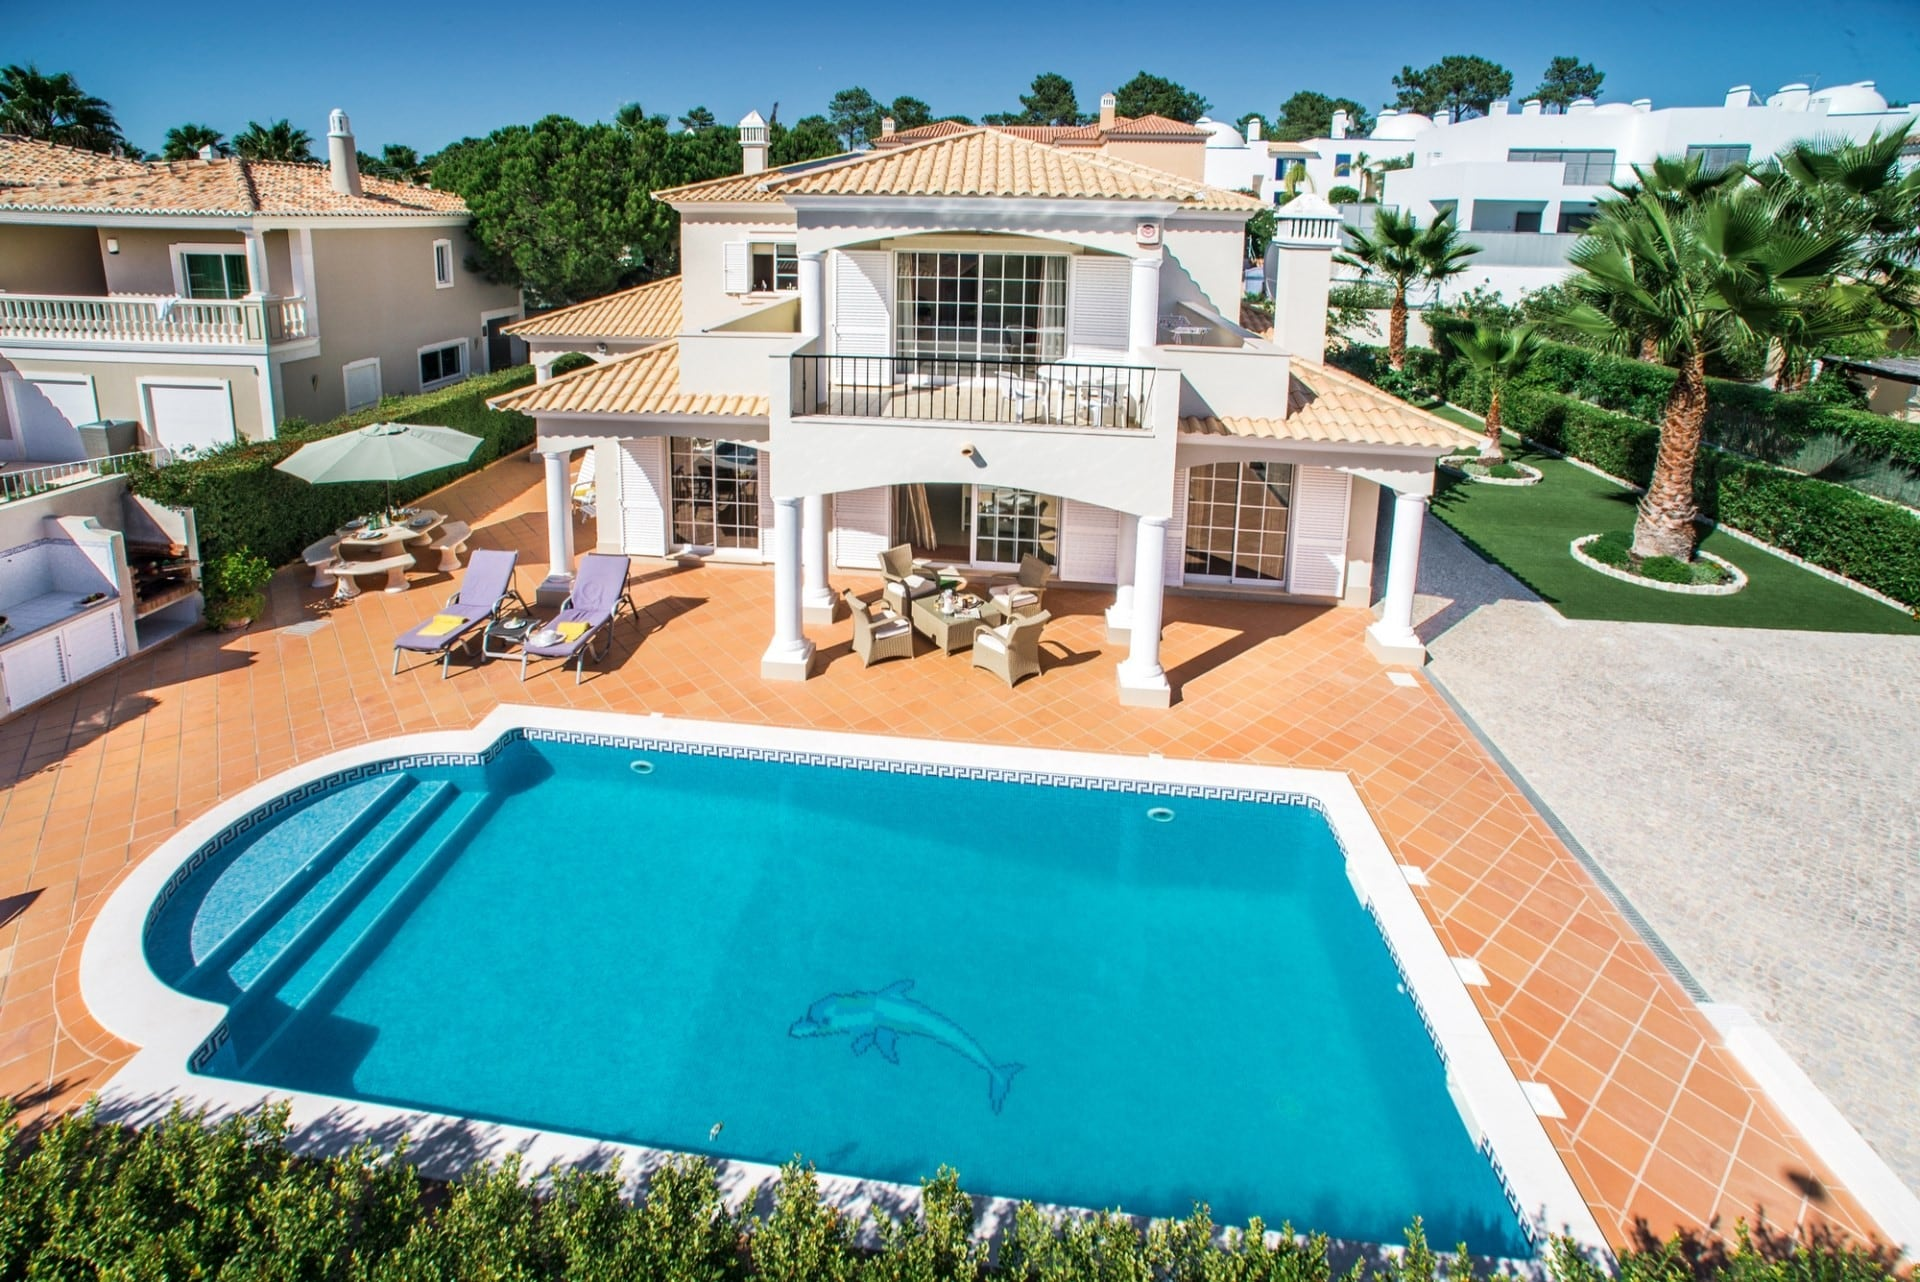 Property Image 1 - Luxury 4 Bedroom Villa in Varandas do Lago with Private Heated Pool & BBQ